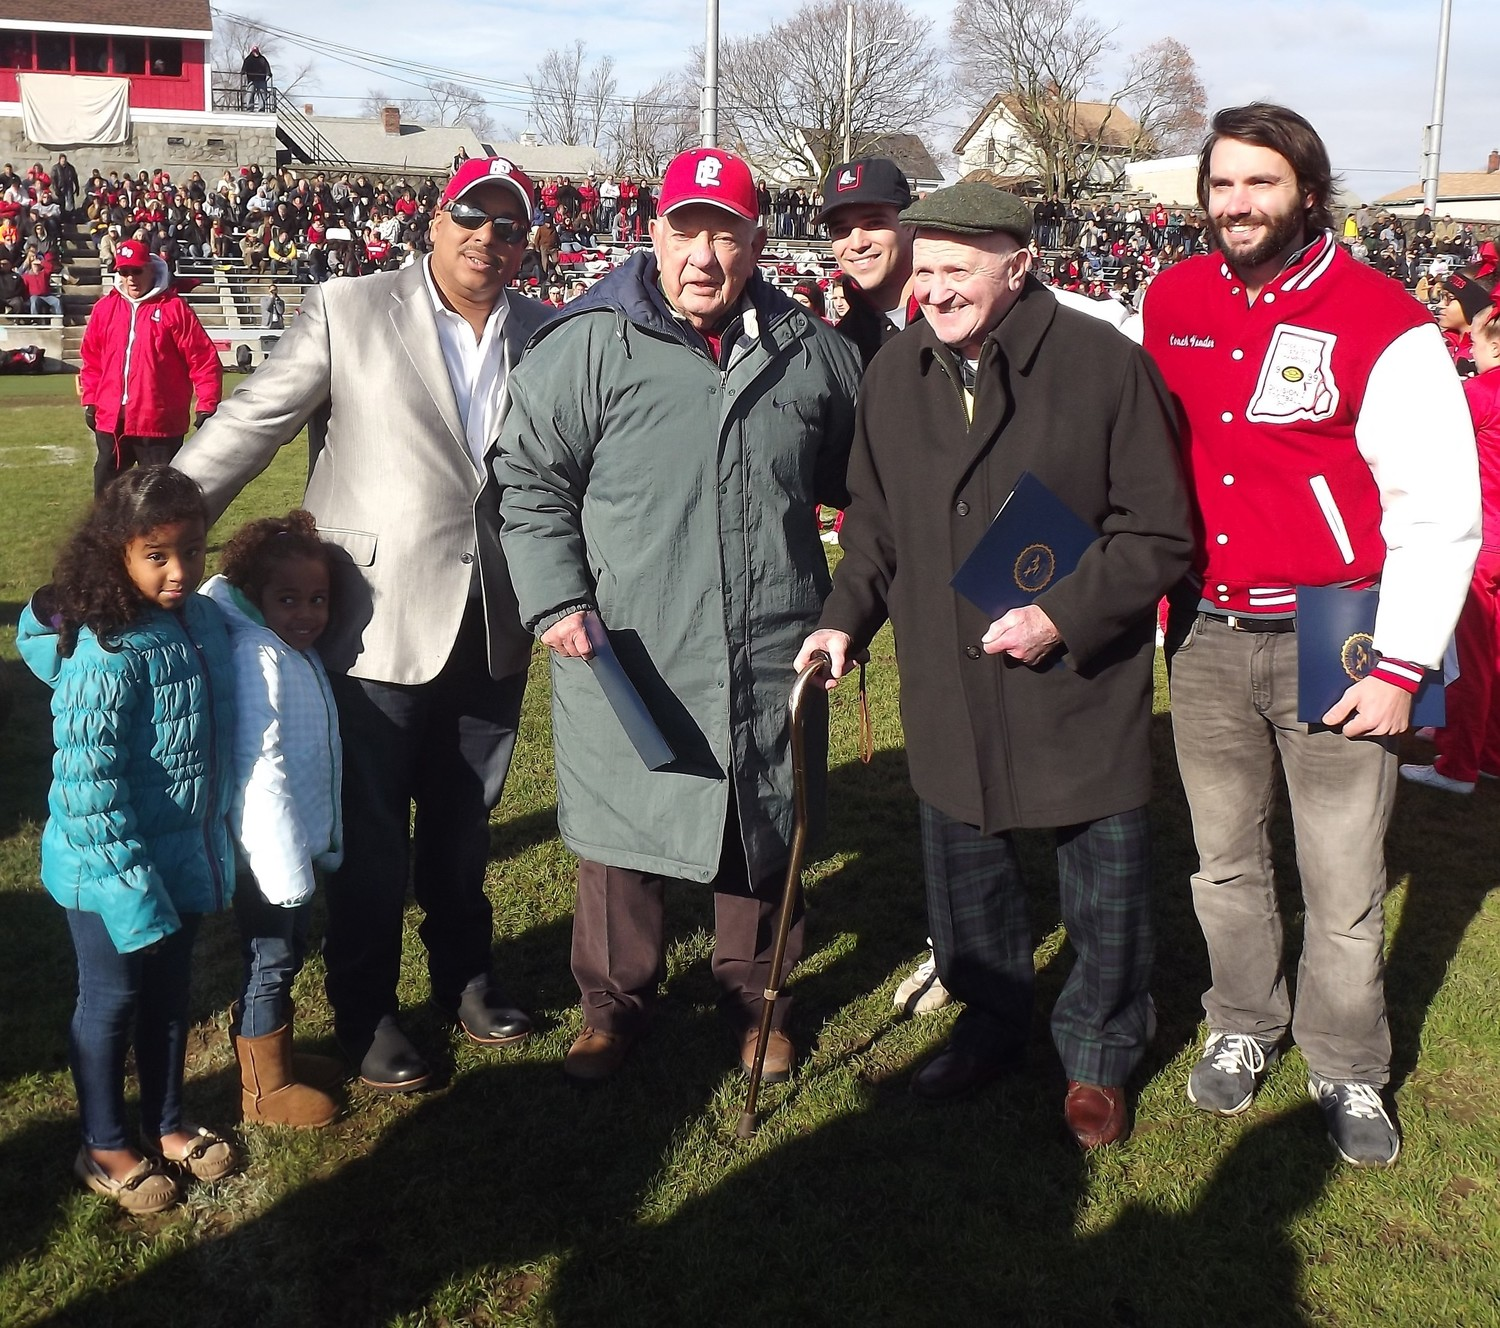 Matt Lopes, Bill Stringfellow, Jaime Silva, Jim Deffley and 